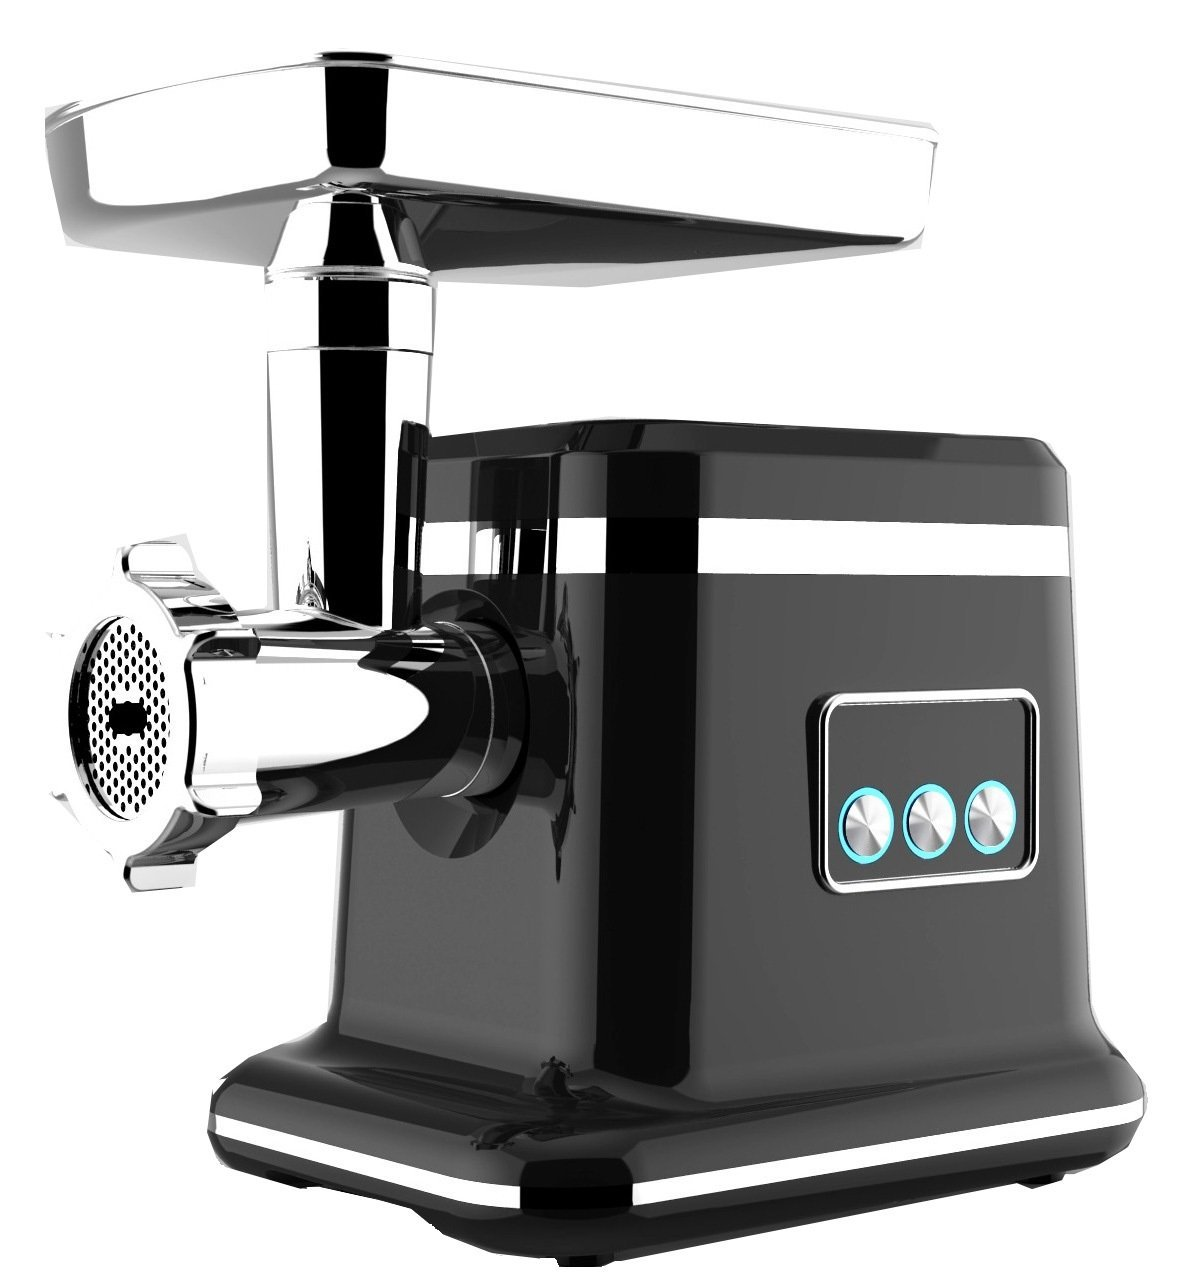 Best Small Meat Grinders for Home Use - Ratings and Reviews cover image